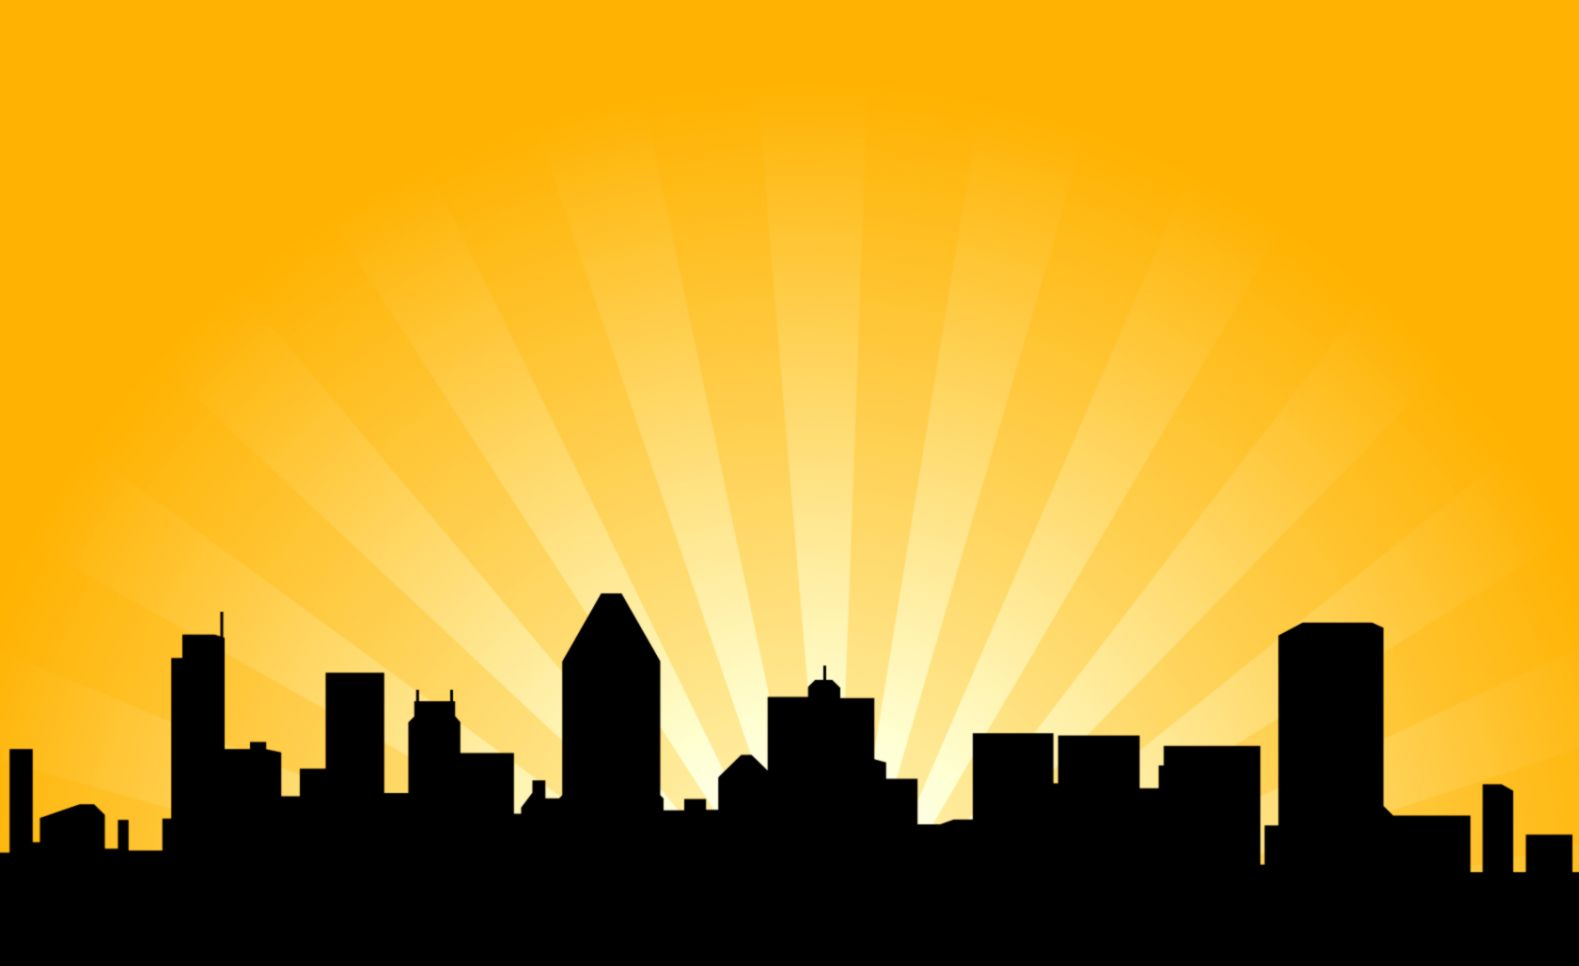 City night skyline clipart clipart black and white City Skyline Silhouette Clipart | Free download best City Skyline ... clipart black and white